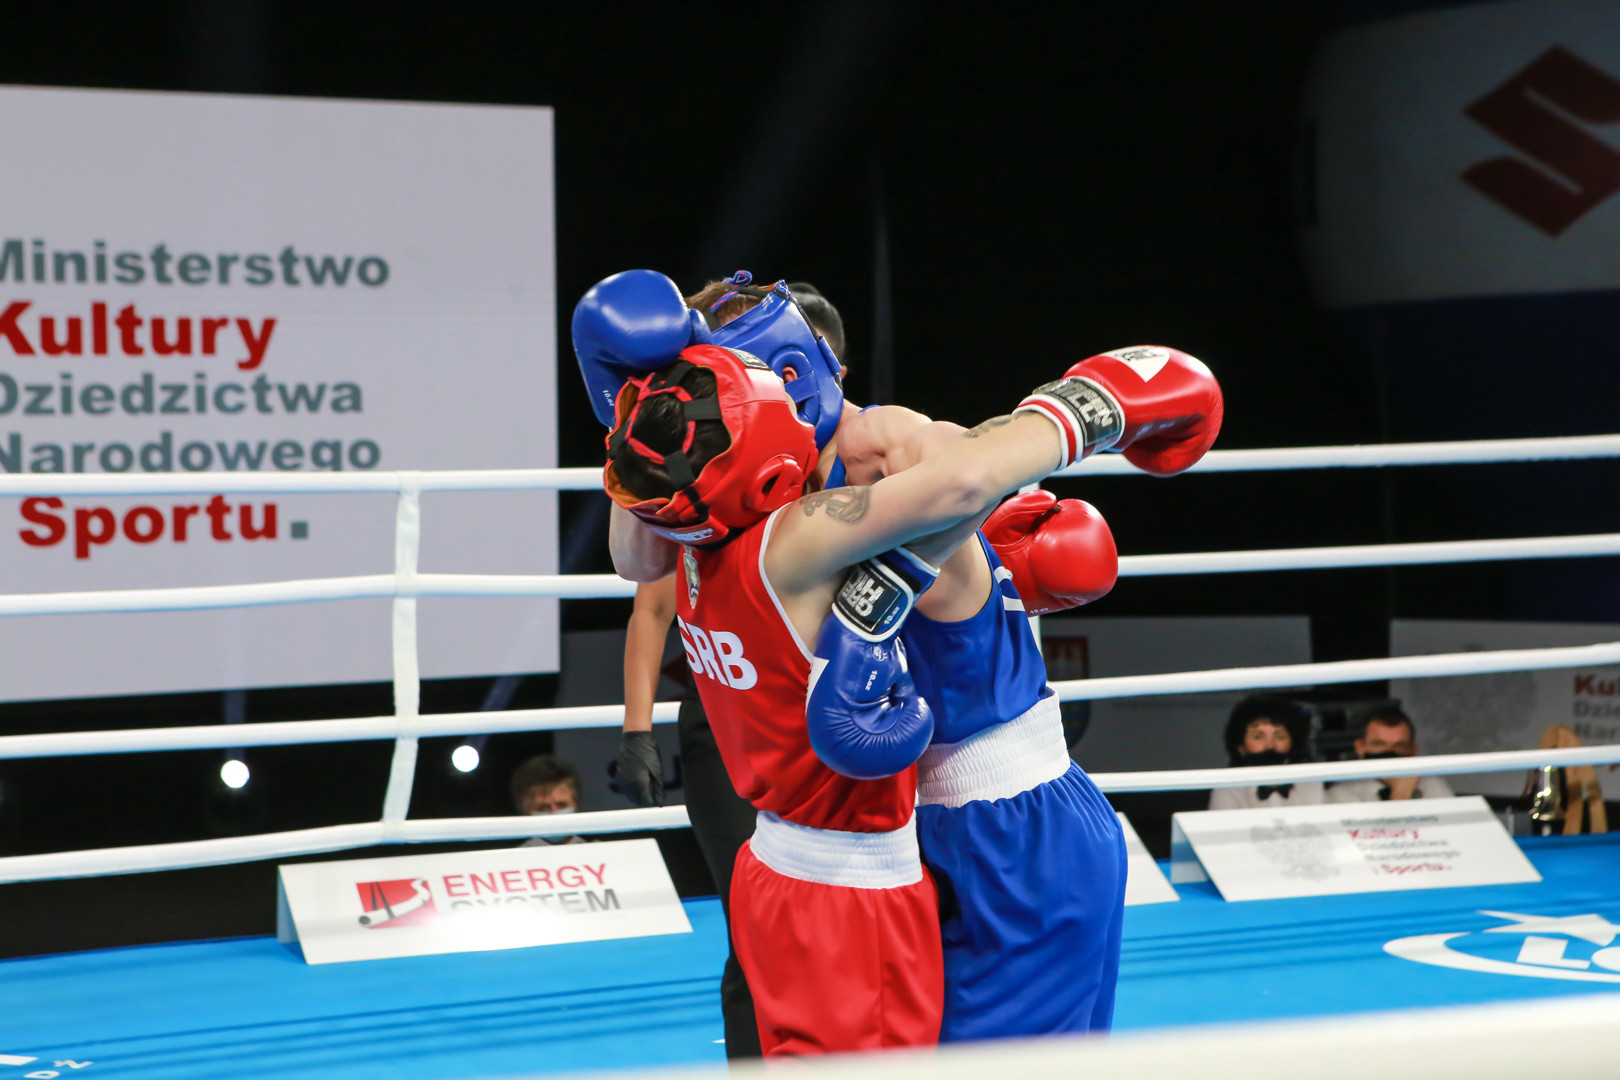 More than 400 male and female boxers from 52 countries are competing in the Championships in Poland ©AIBA